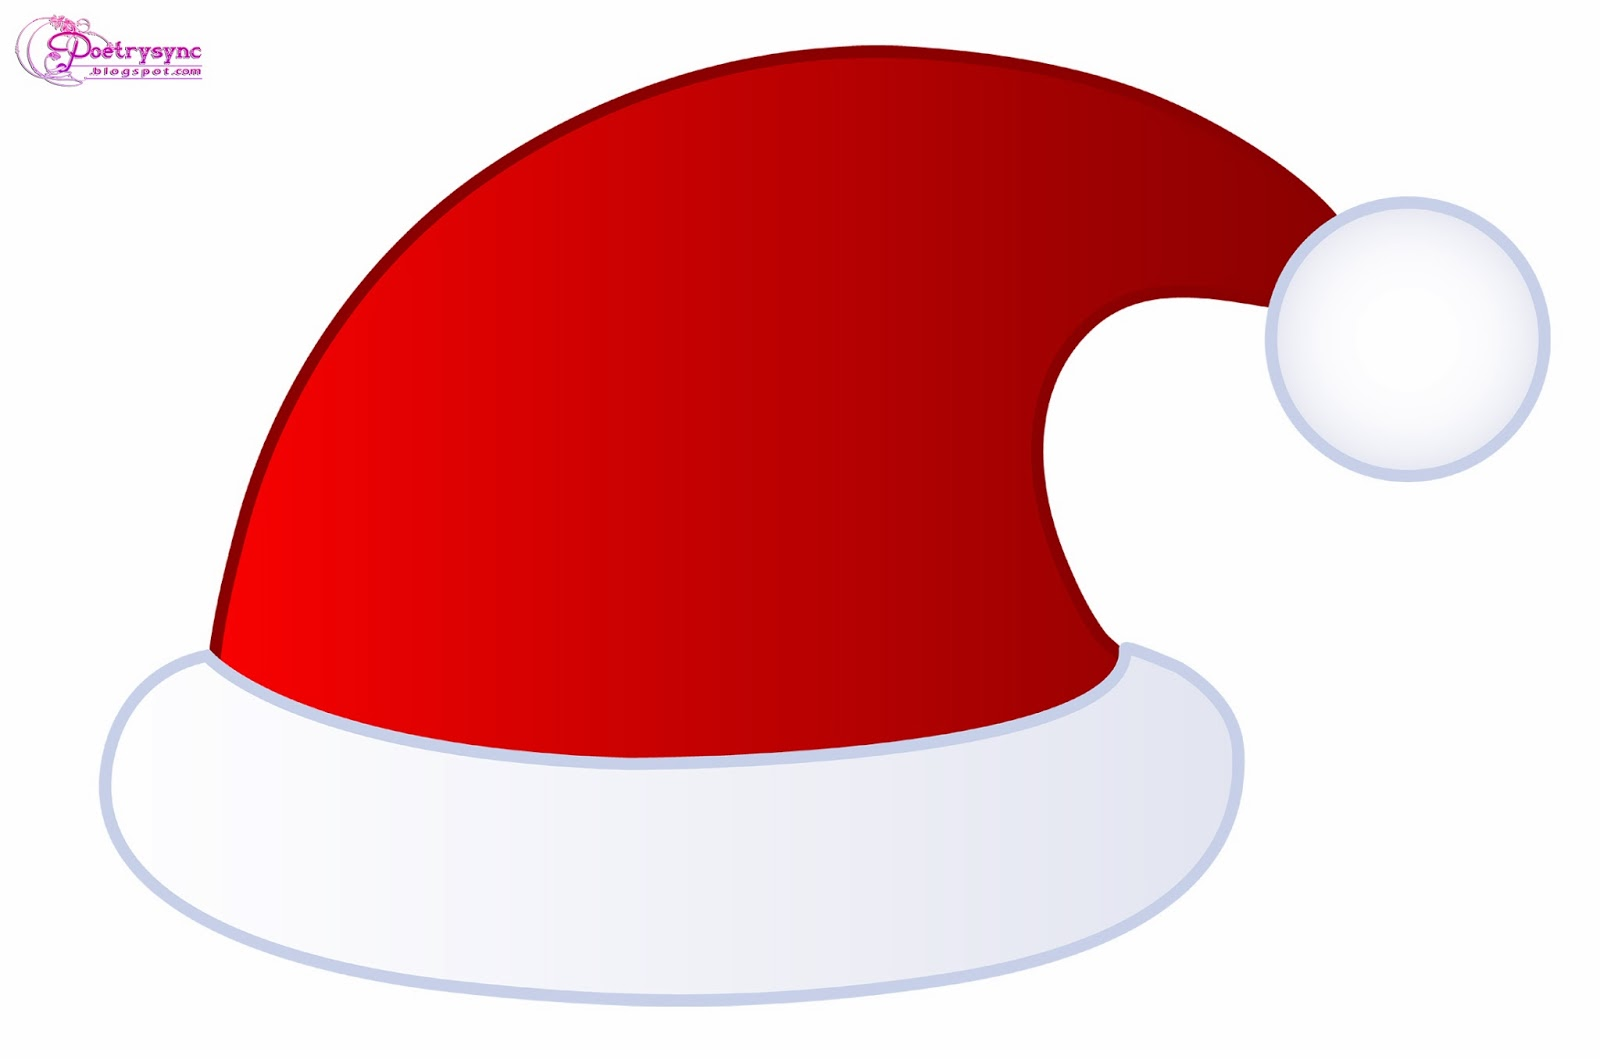 Santa Hat clipart #18, Download drawings